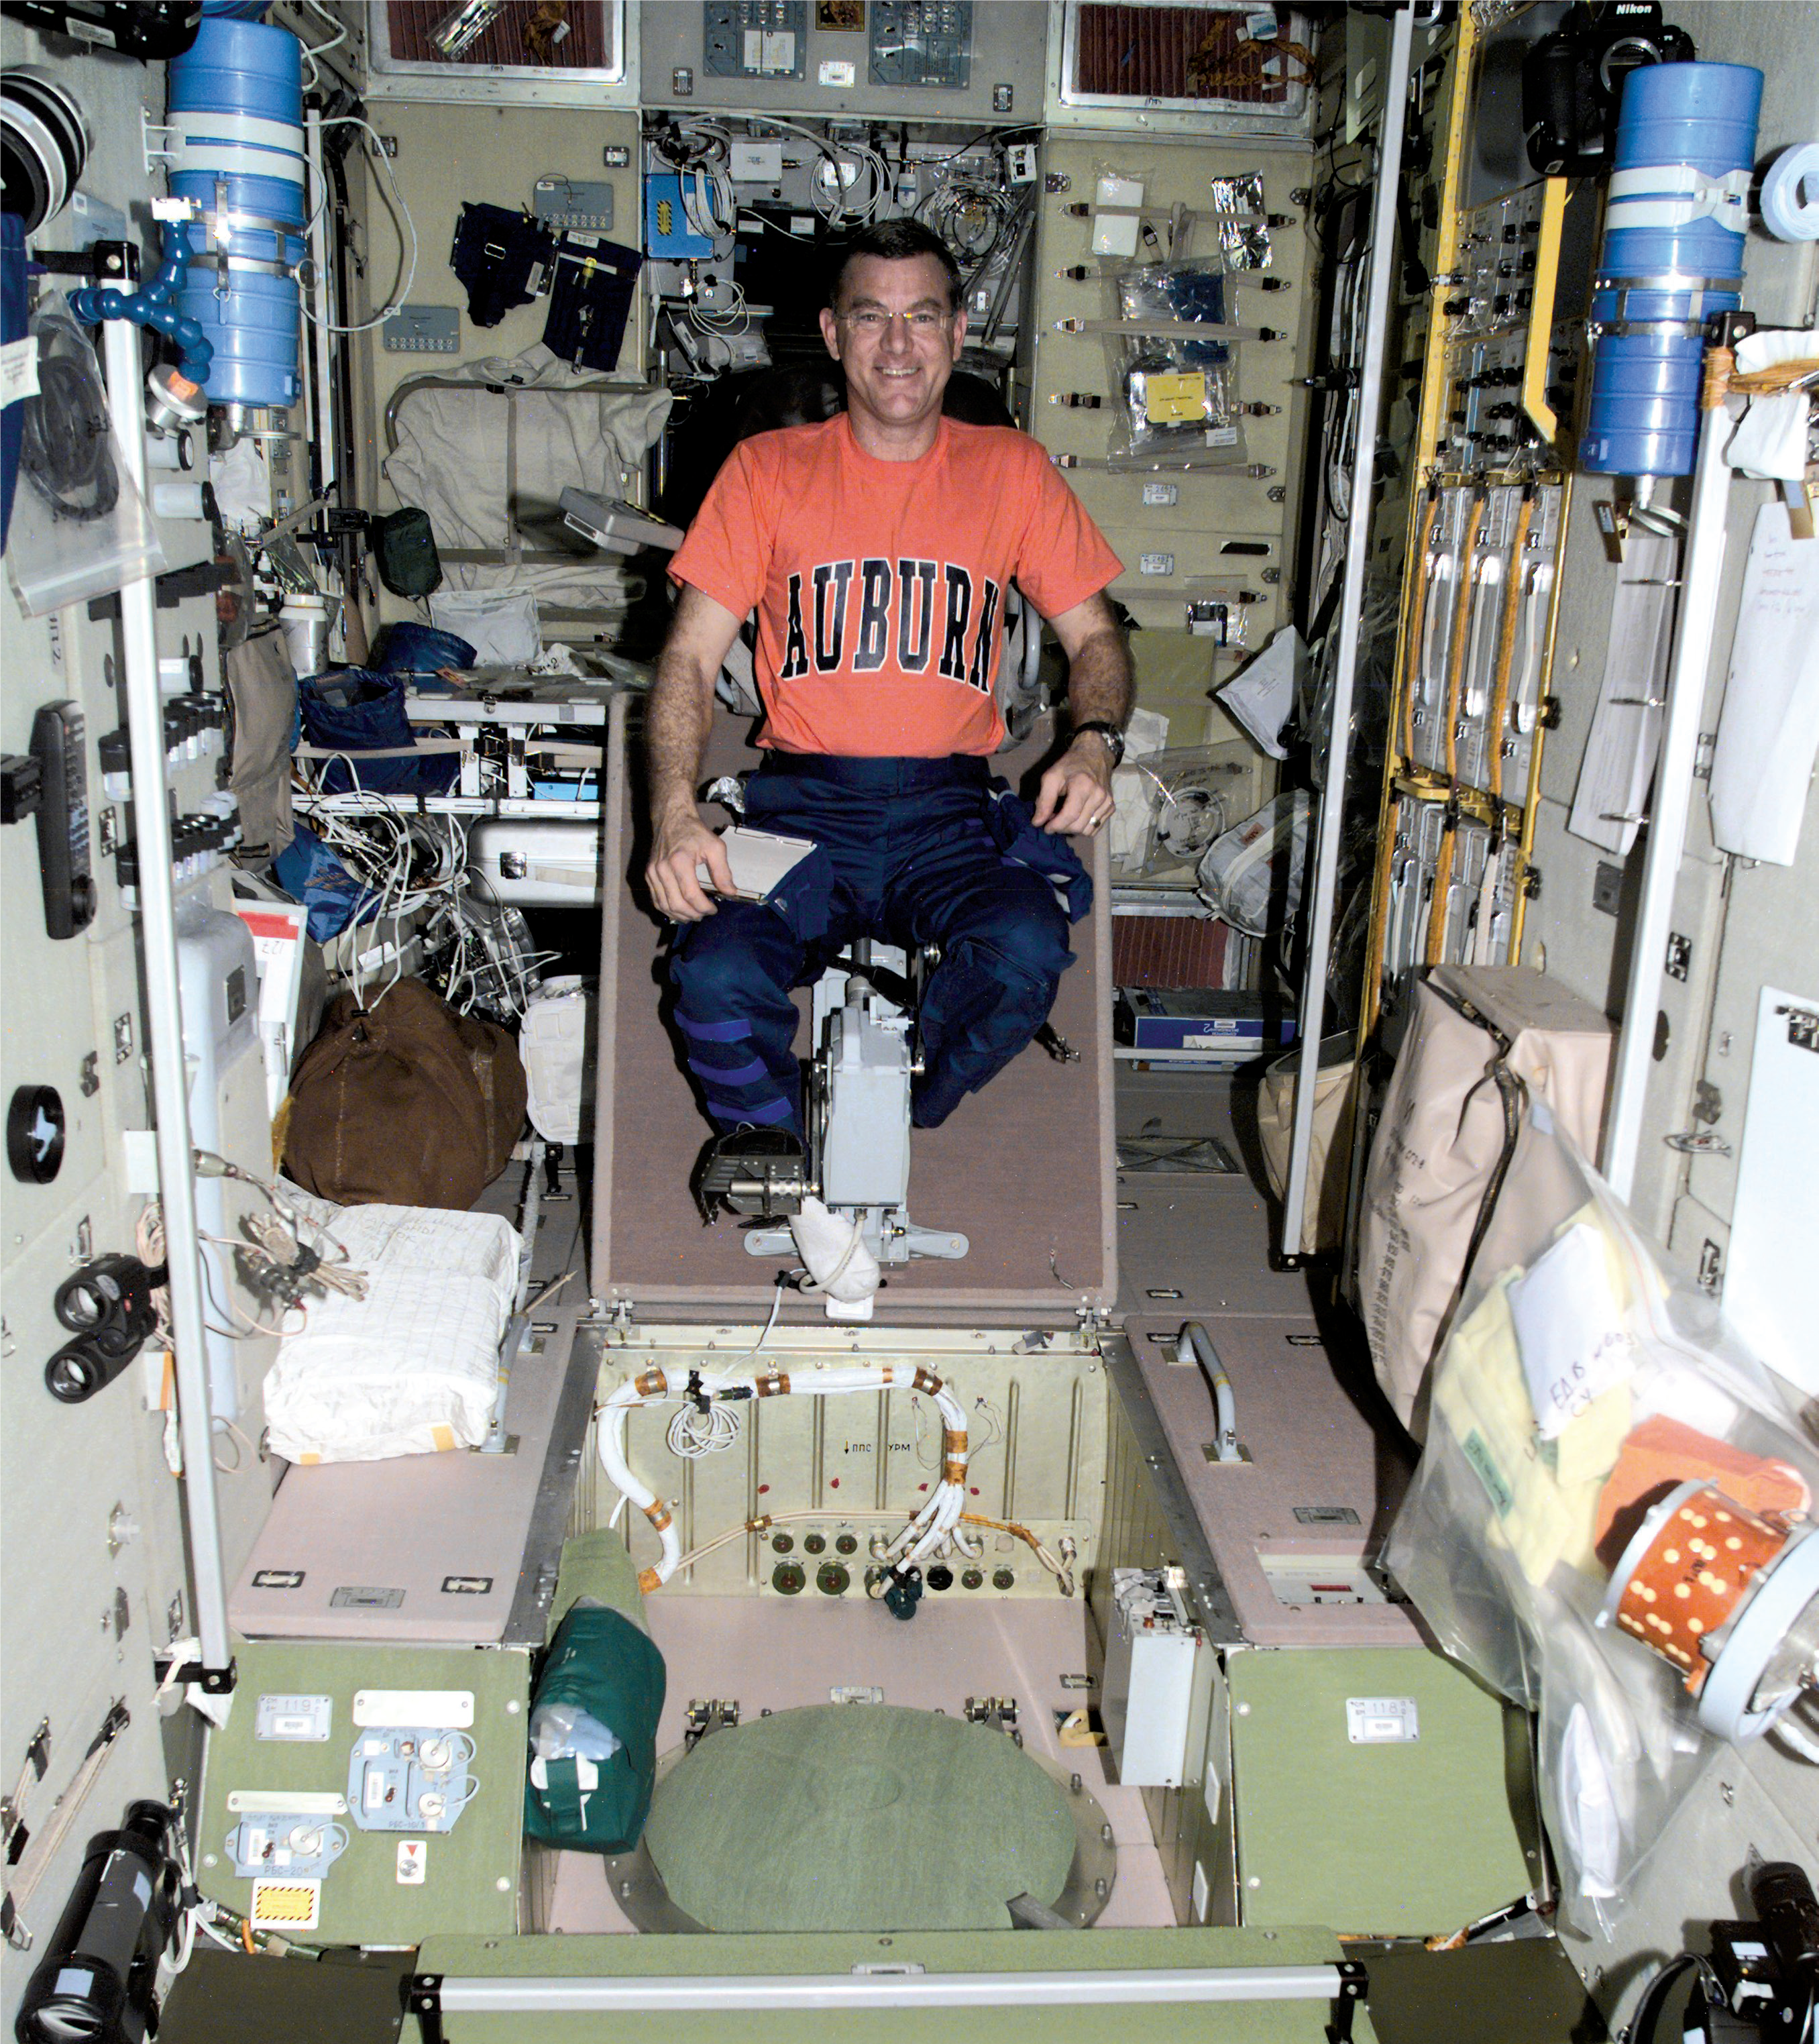 Jim Voss '72, Expedition Two flight engineer, prepares to exercise on the cycle ergometer in the Zvezda Service Module on March 23, 2001.